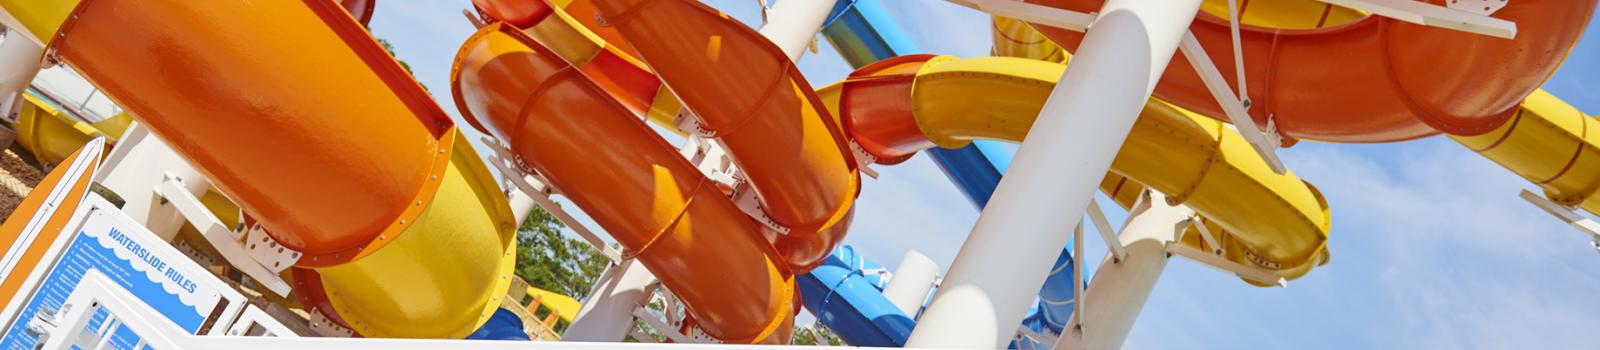 Slides at Maui Jack's Waterpark